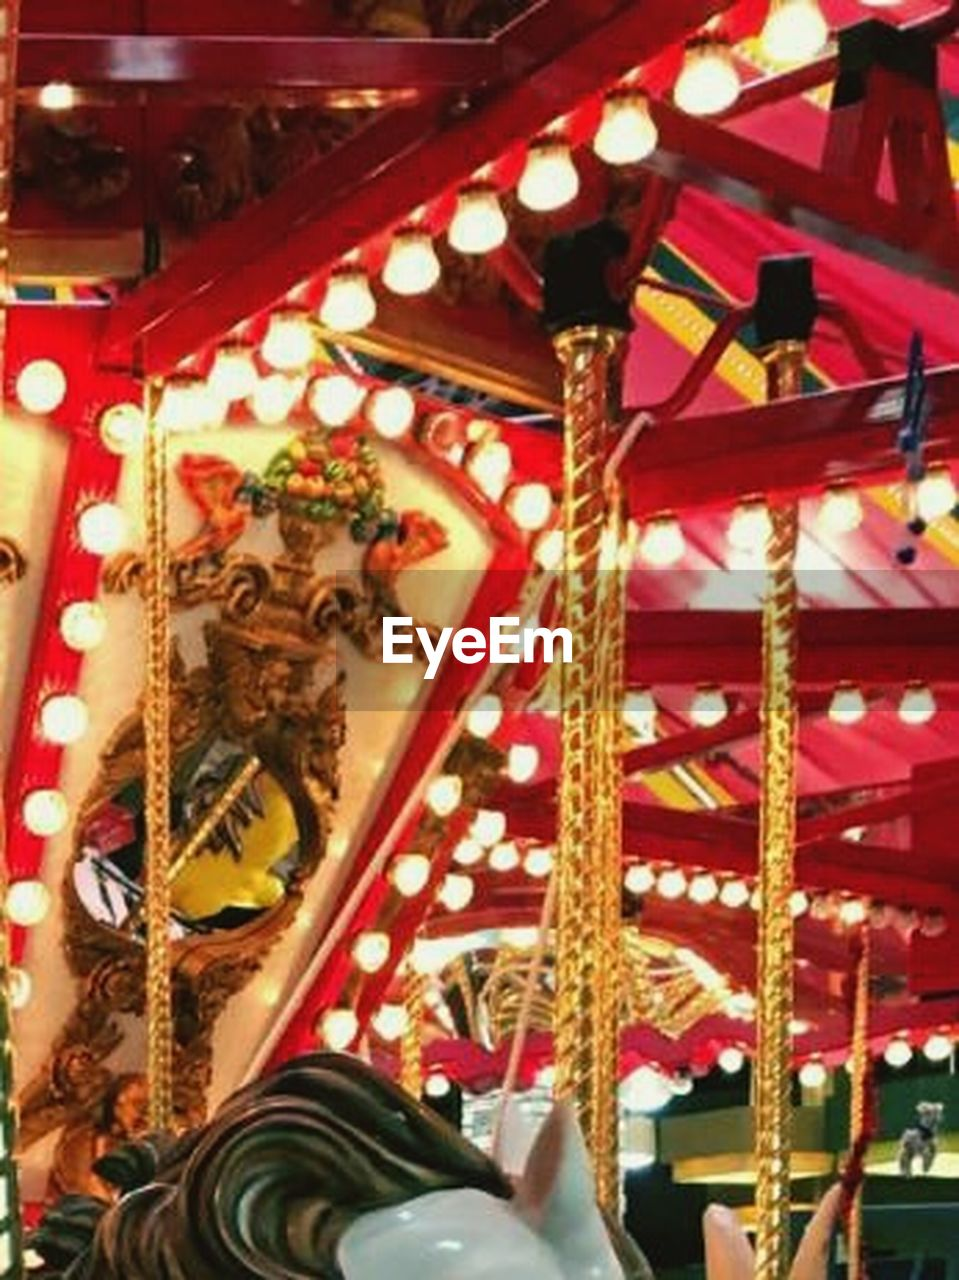 amusement park, arts culture and entertainment, illuminated, carousel, fun, enjoyment, amusement park ride, night, close-up, no people, indoors